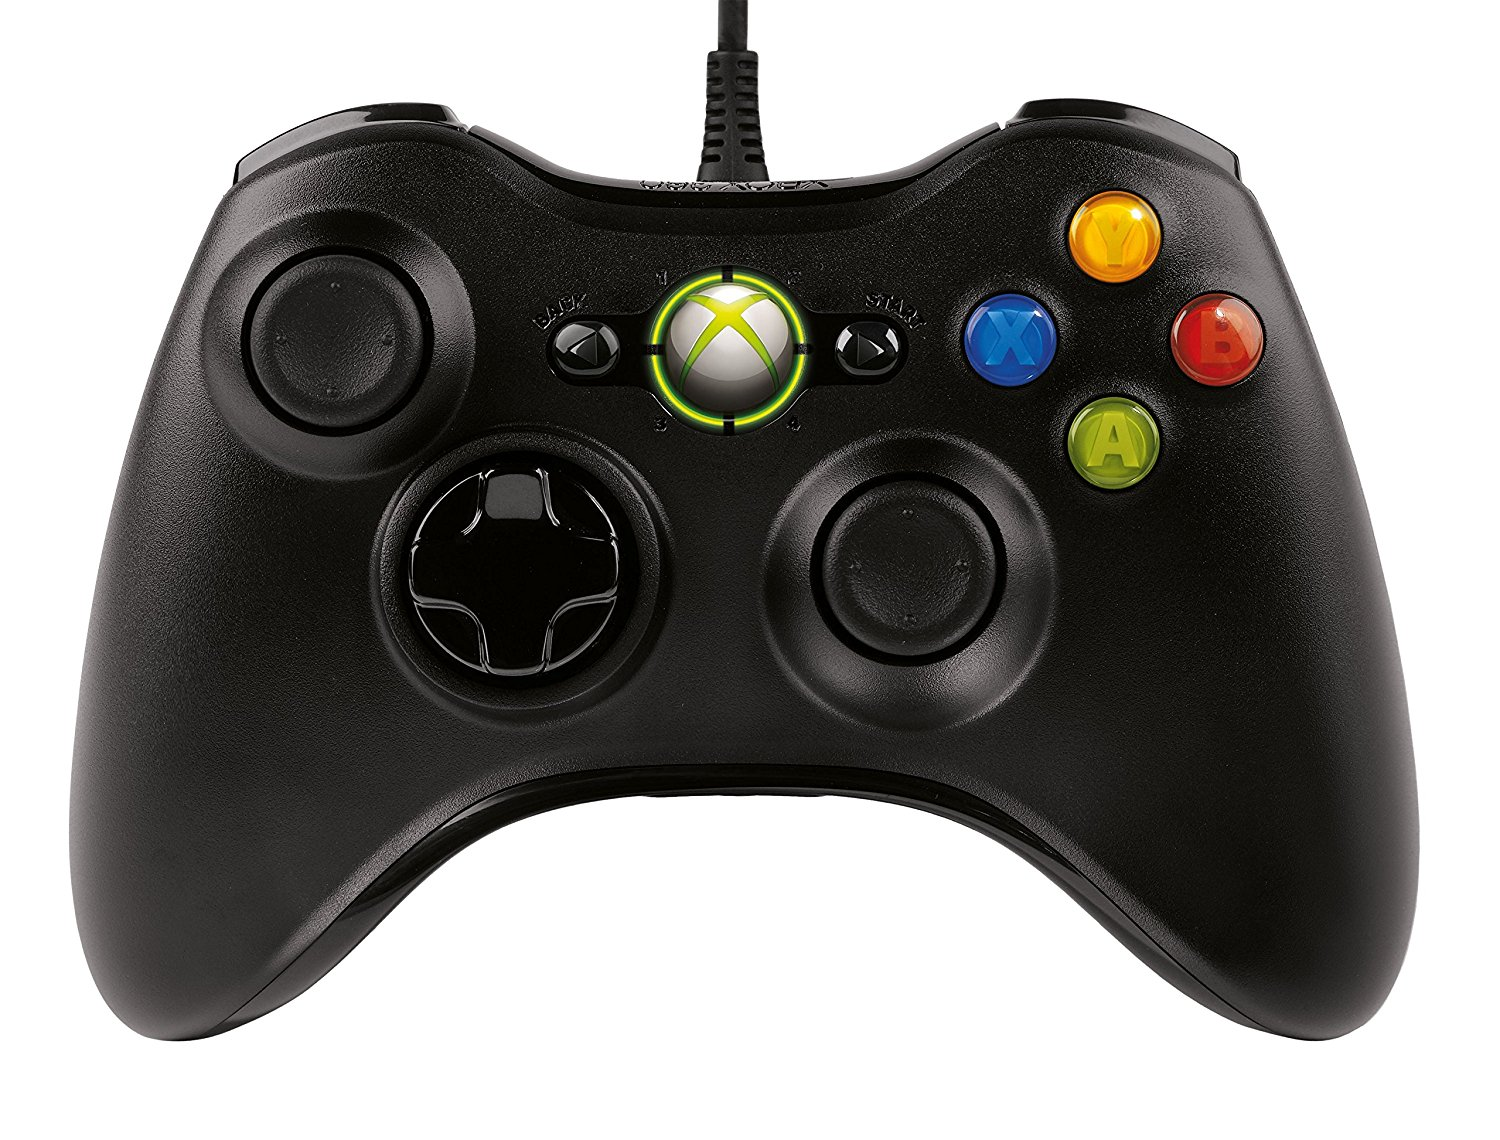 Official Xbox 360 Common Controller For Windows - Black (PC): Amazon.co.uk:  PC U0026 Video Games - Xbox 360 Controller PNG